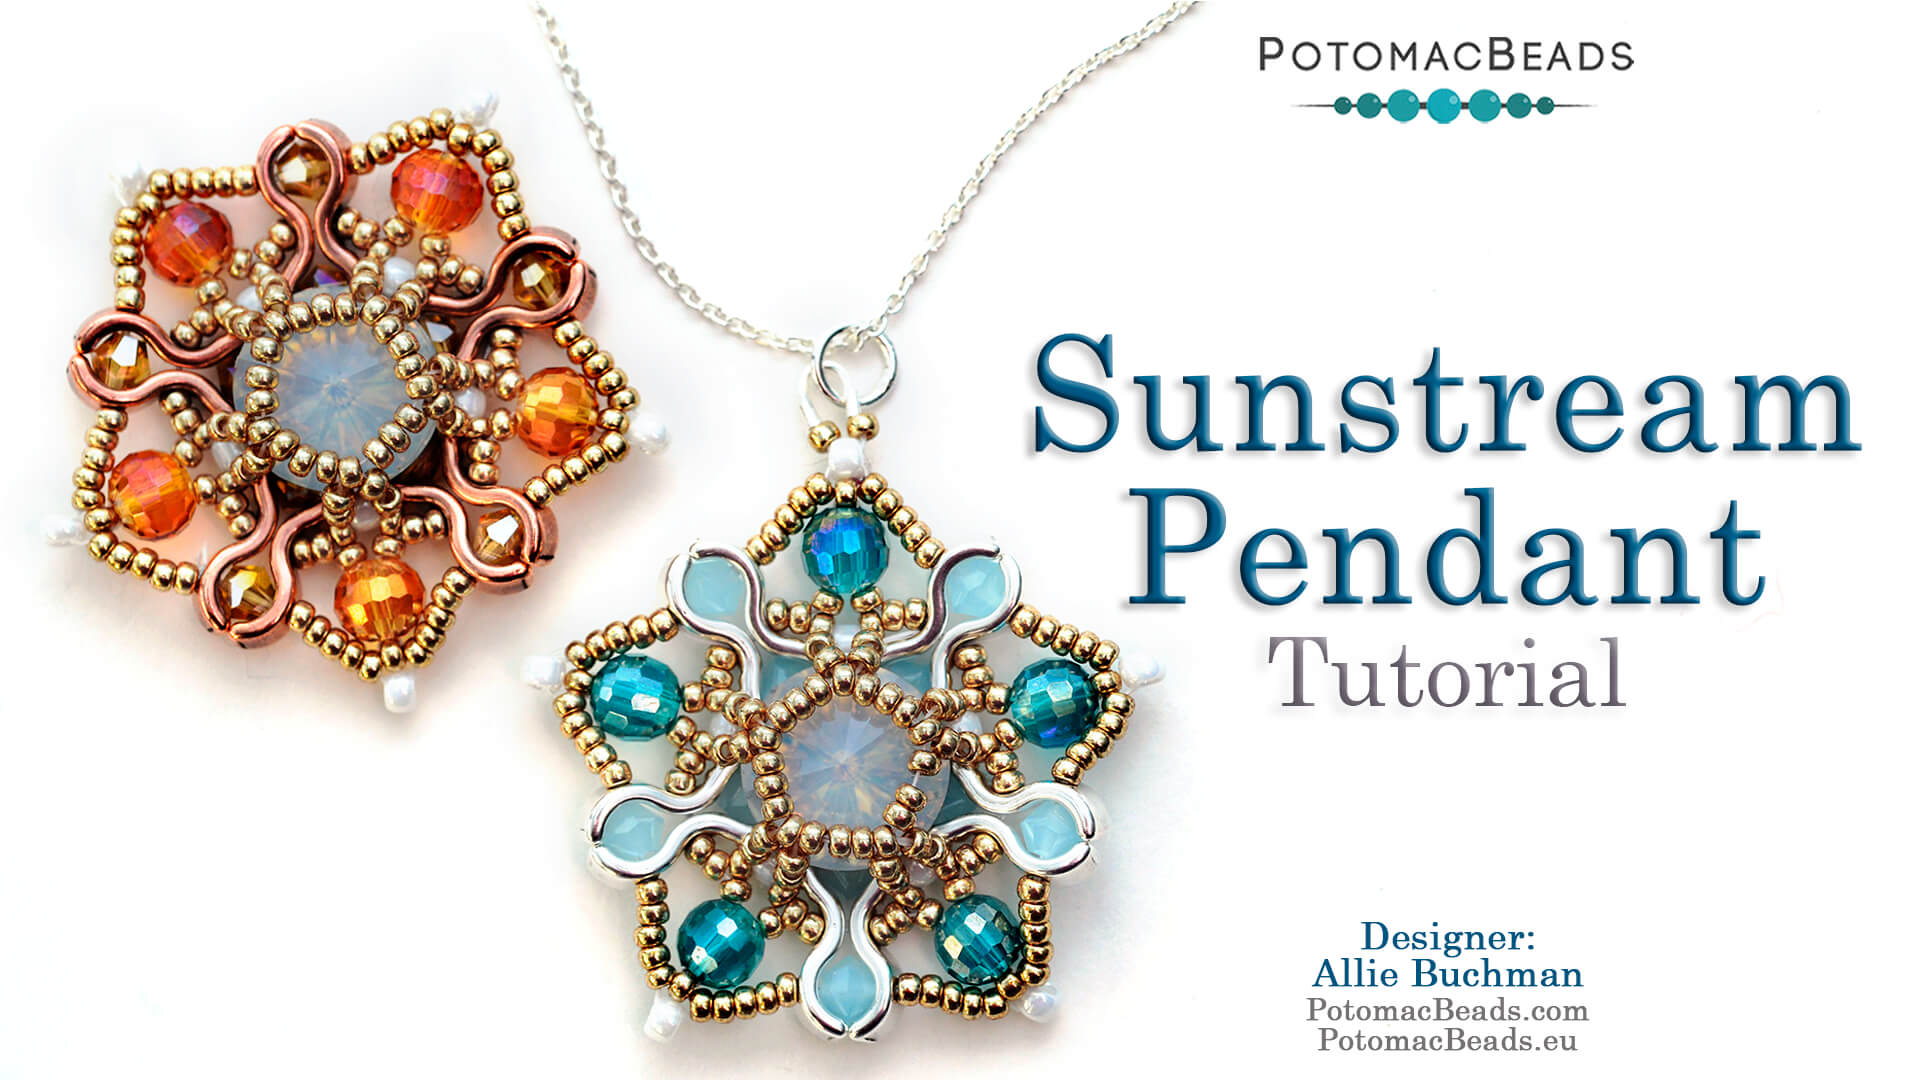 How to Bead / Videos Sorted by Beads / All Other Bead Videos / Sunstream Pendant Tutorial